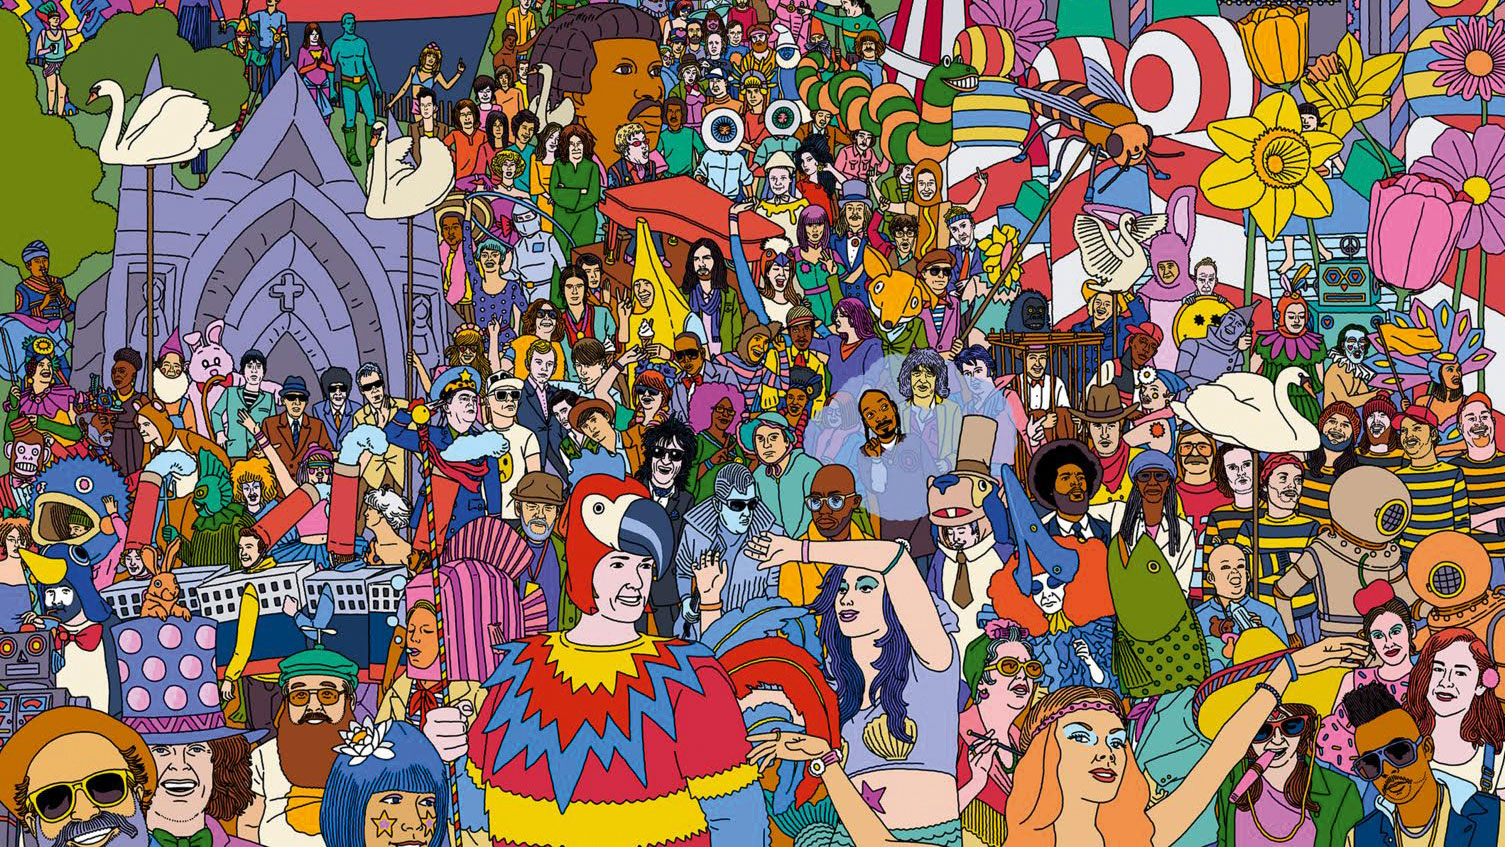 Artwork for Where's My Welly?: The World's Greatest Music Festival Challenge, illustrated by Jim Stoten